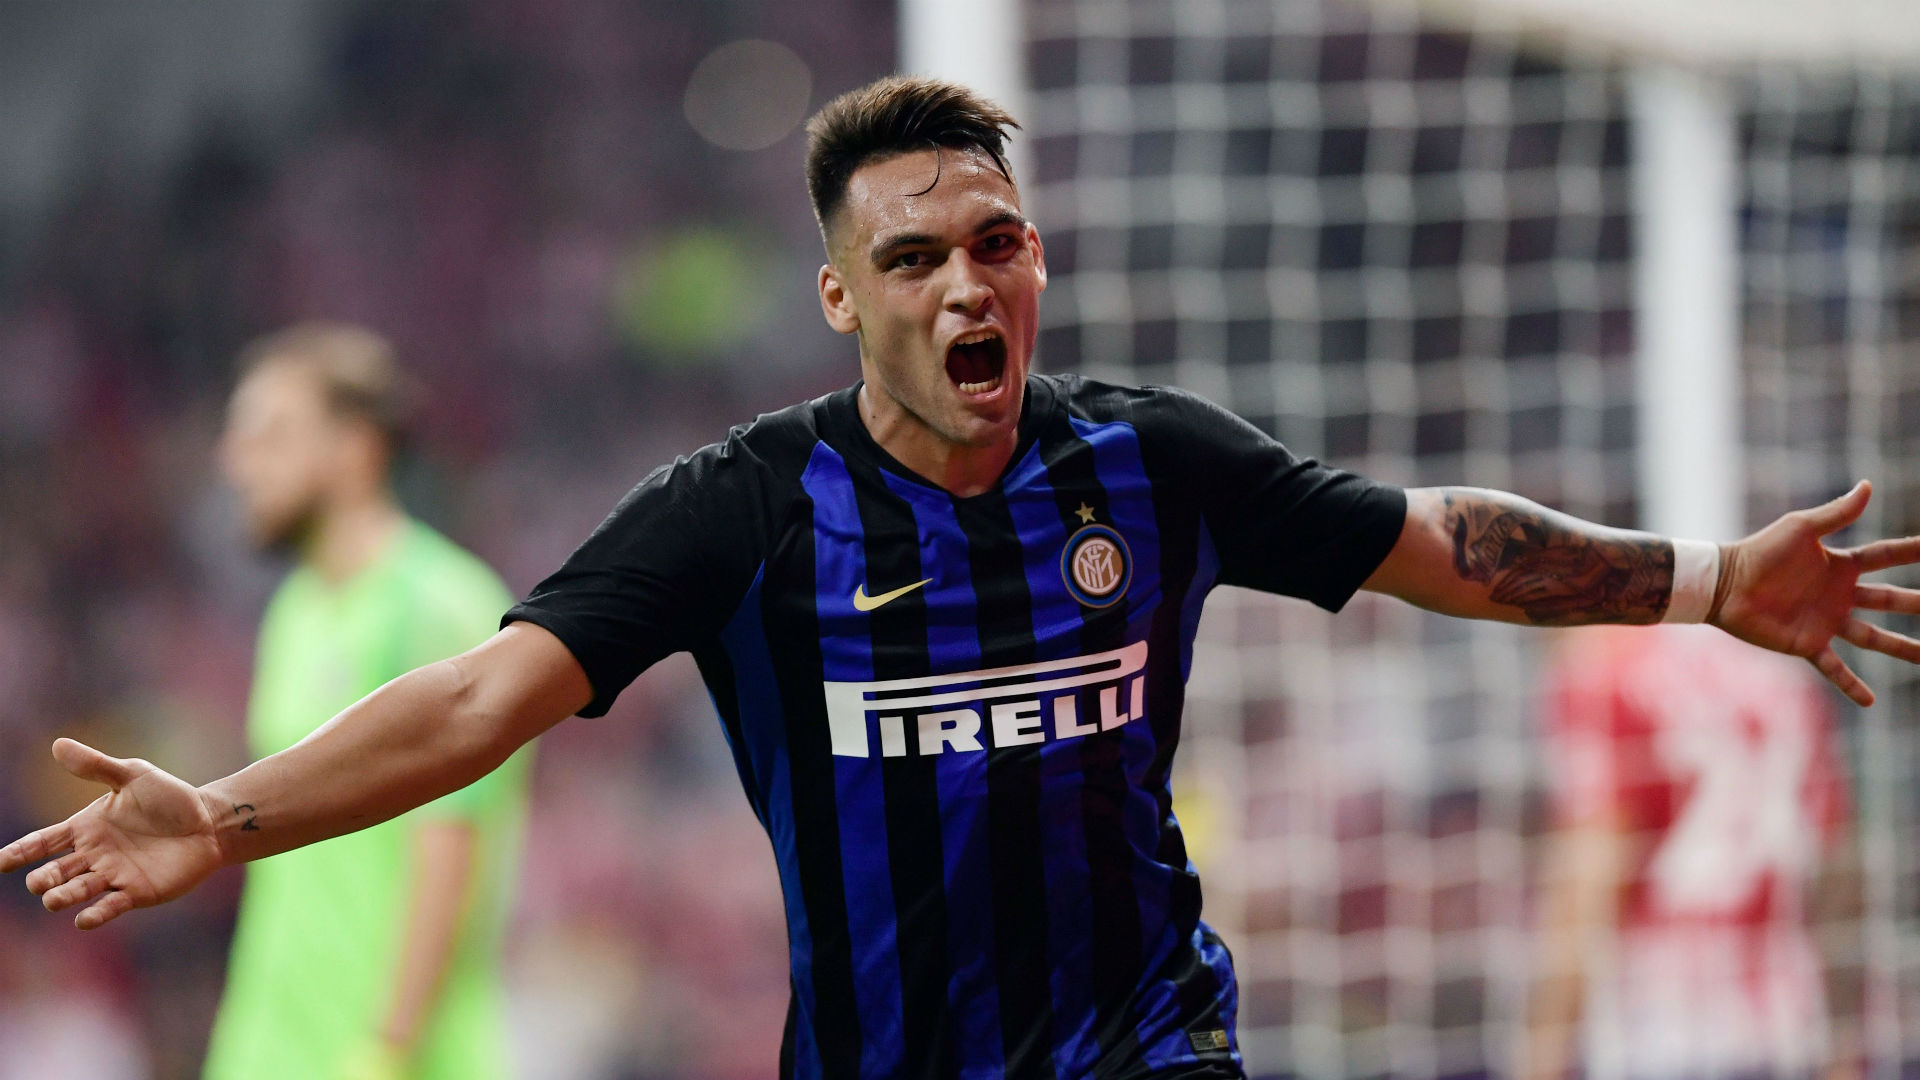 Lautaro Martínez is the ideal partner of Icardi in the Inter